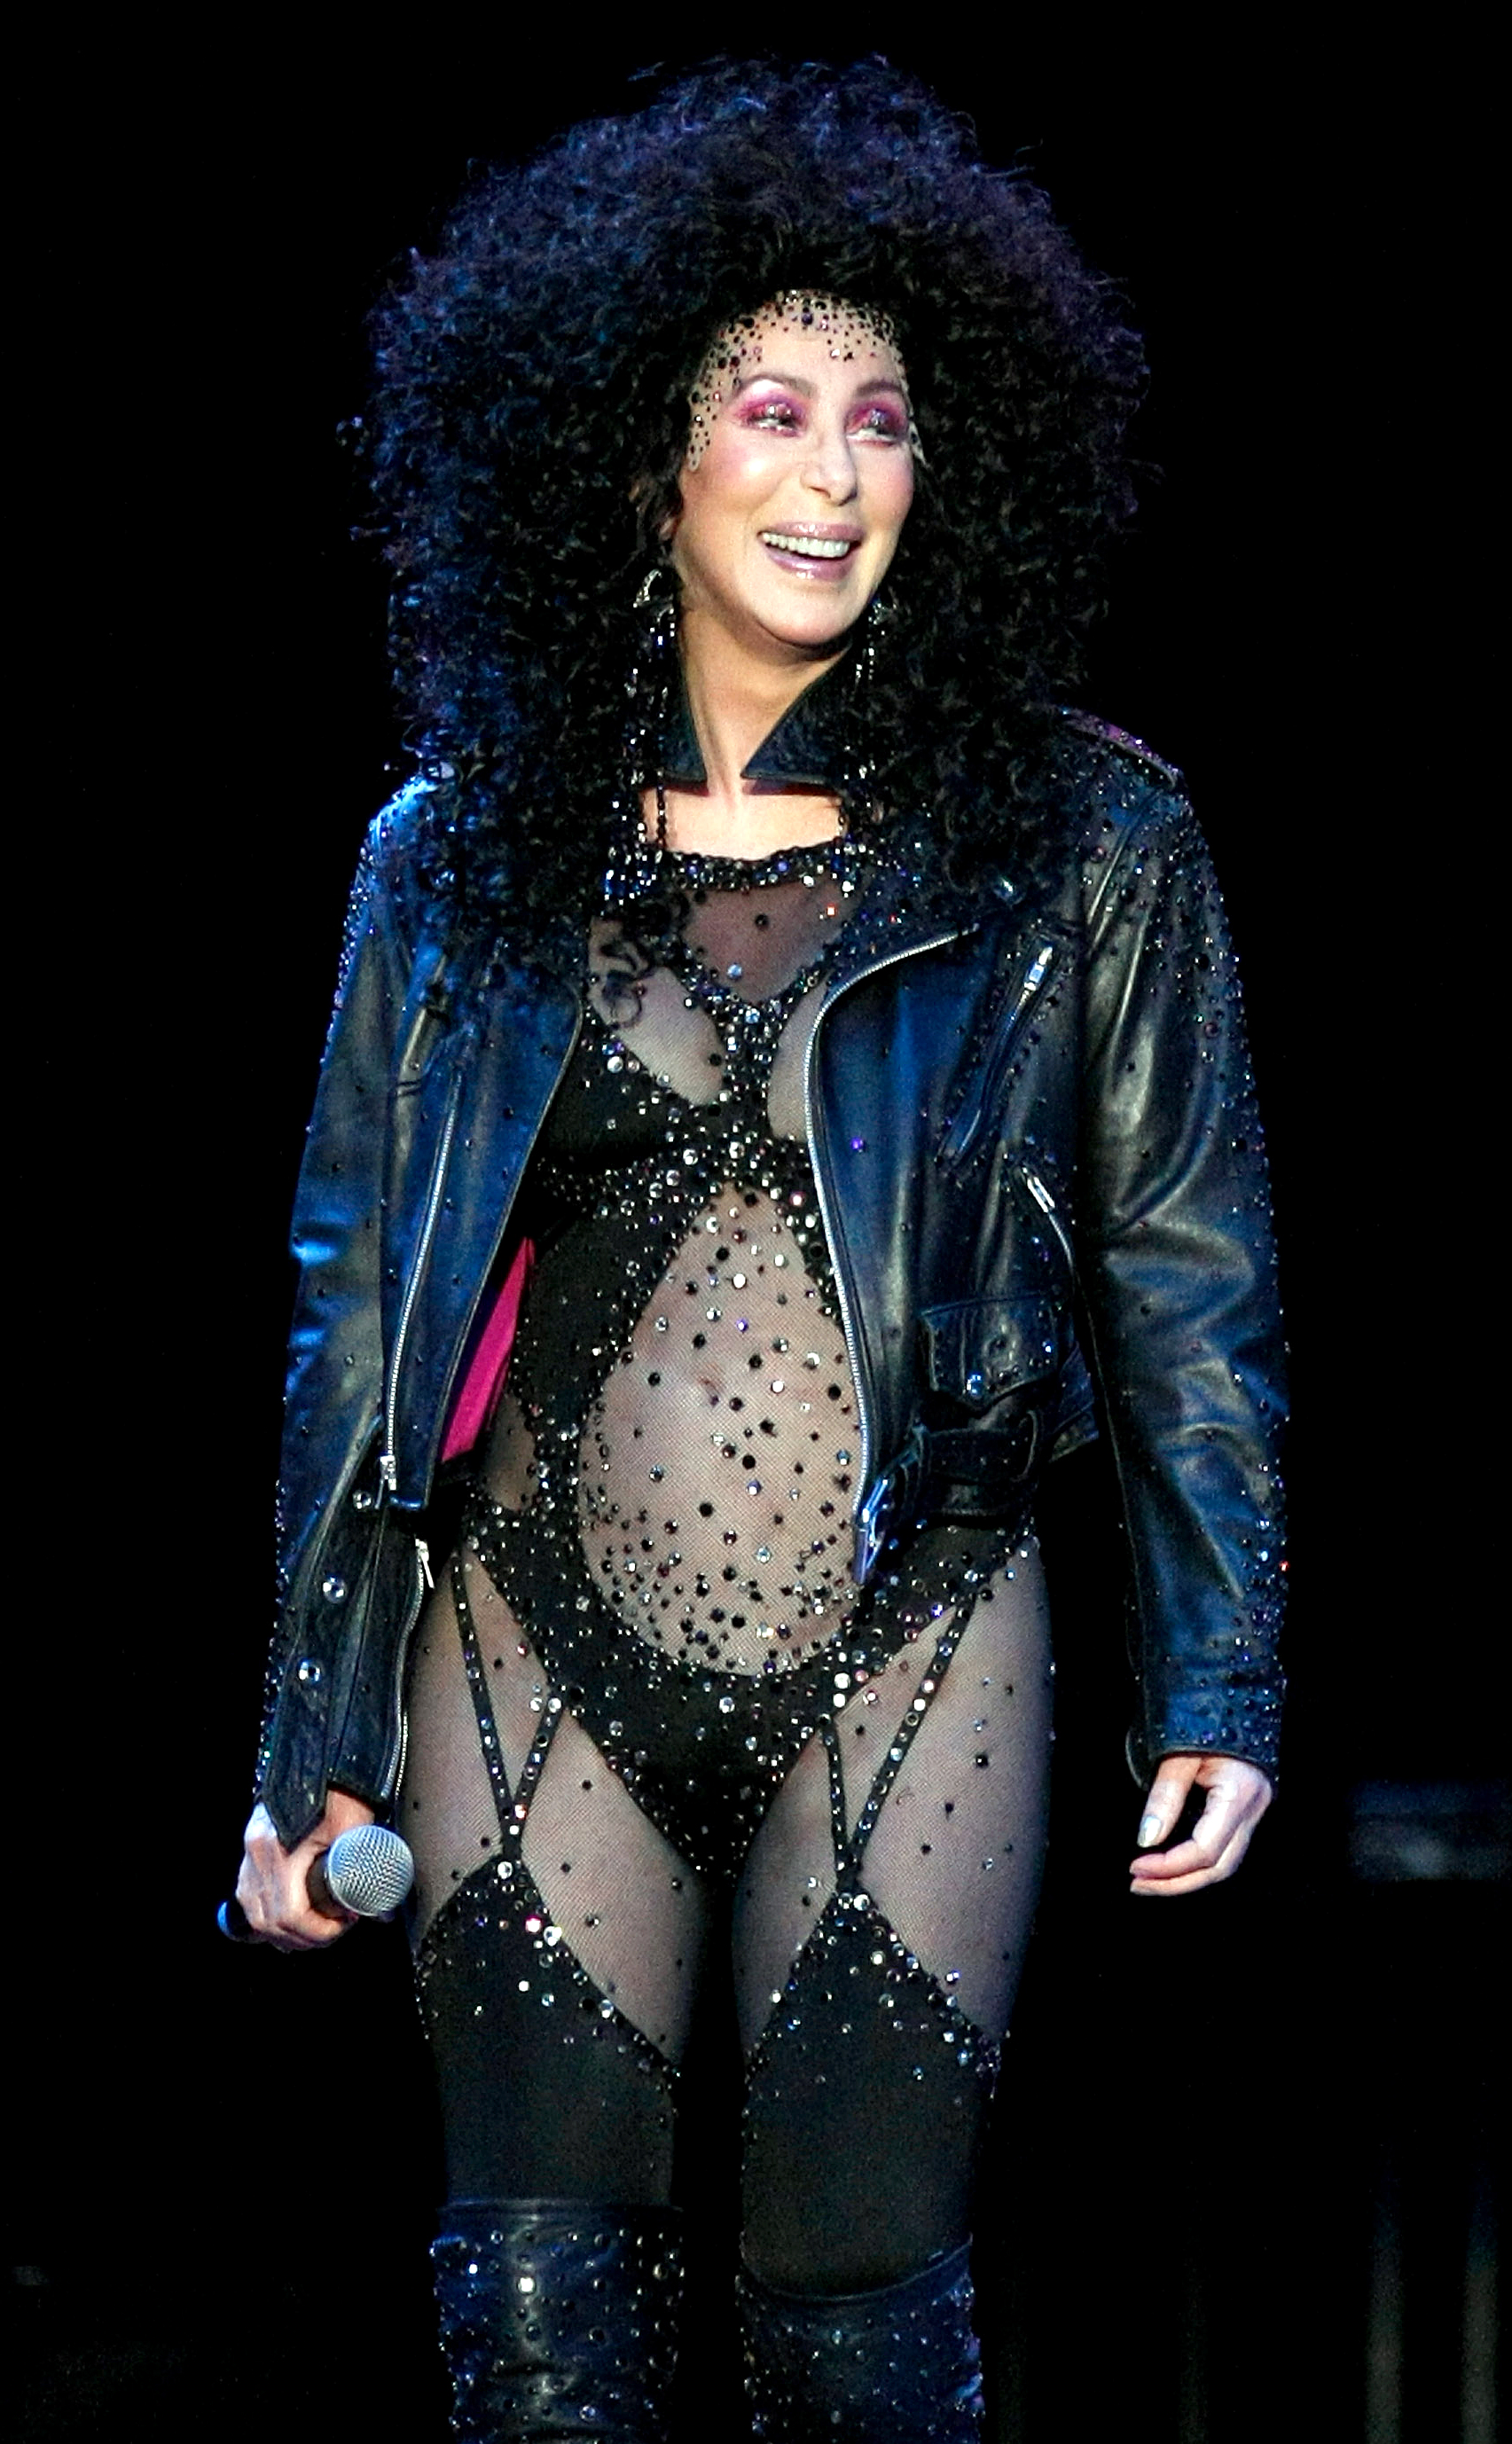 Cher Through The Years - Cher decided that she was not done performing yet and kicked off her self-titled residency in Las Vegas, which lasted until February 2011.